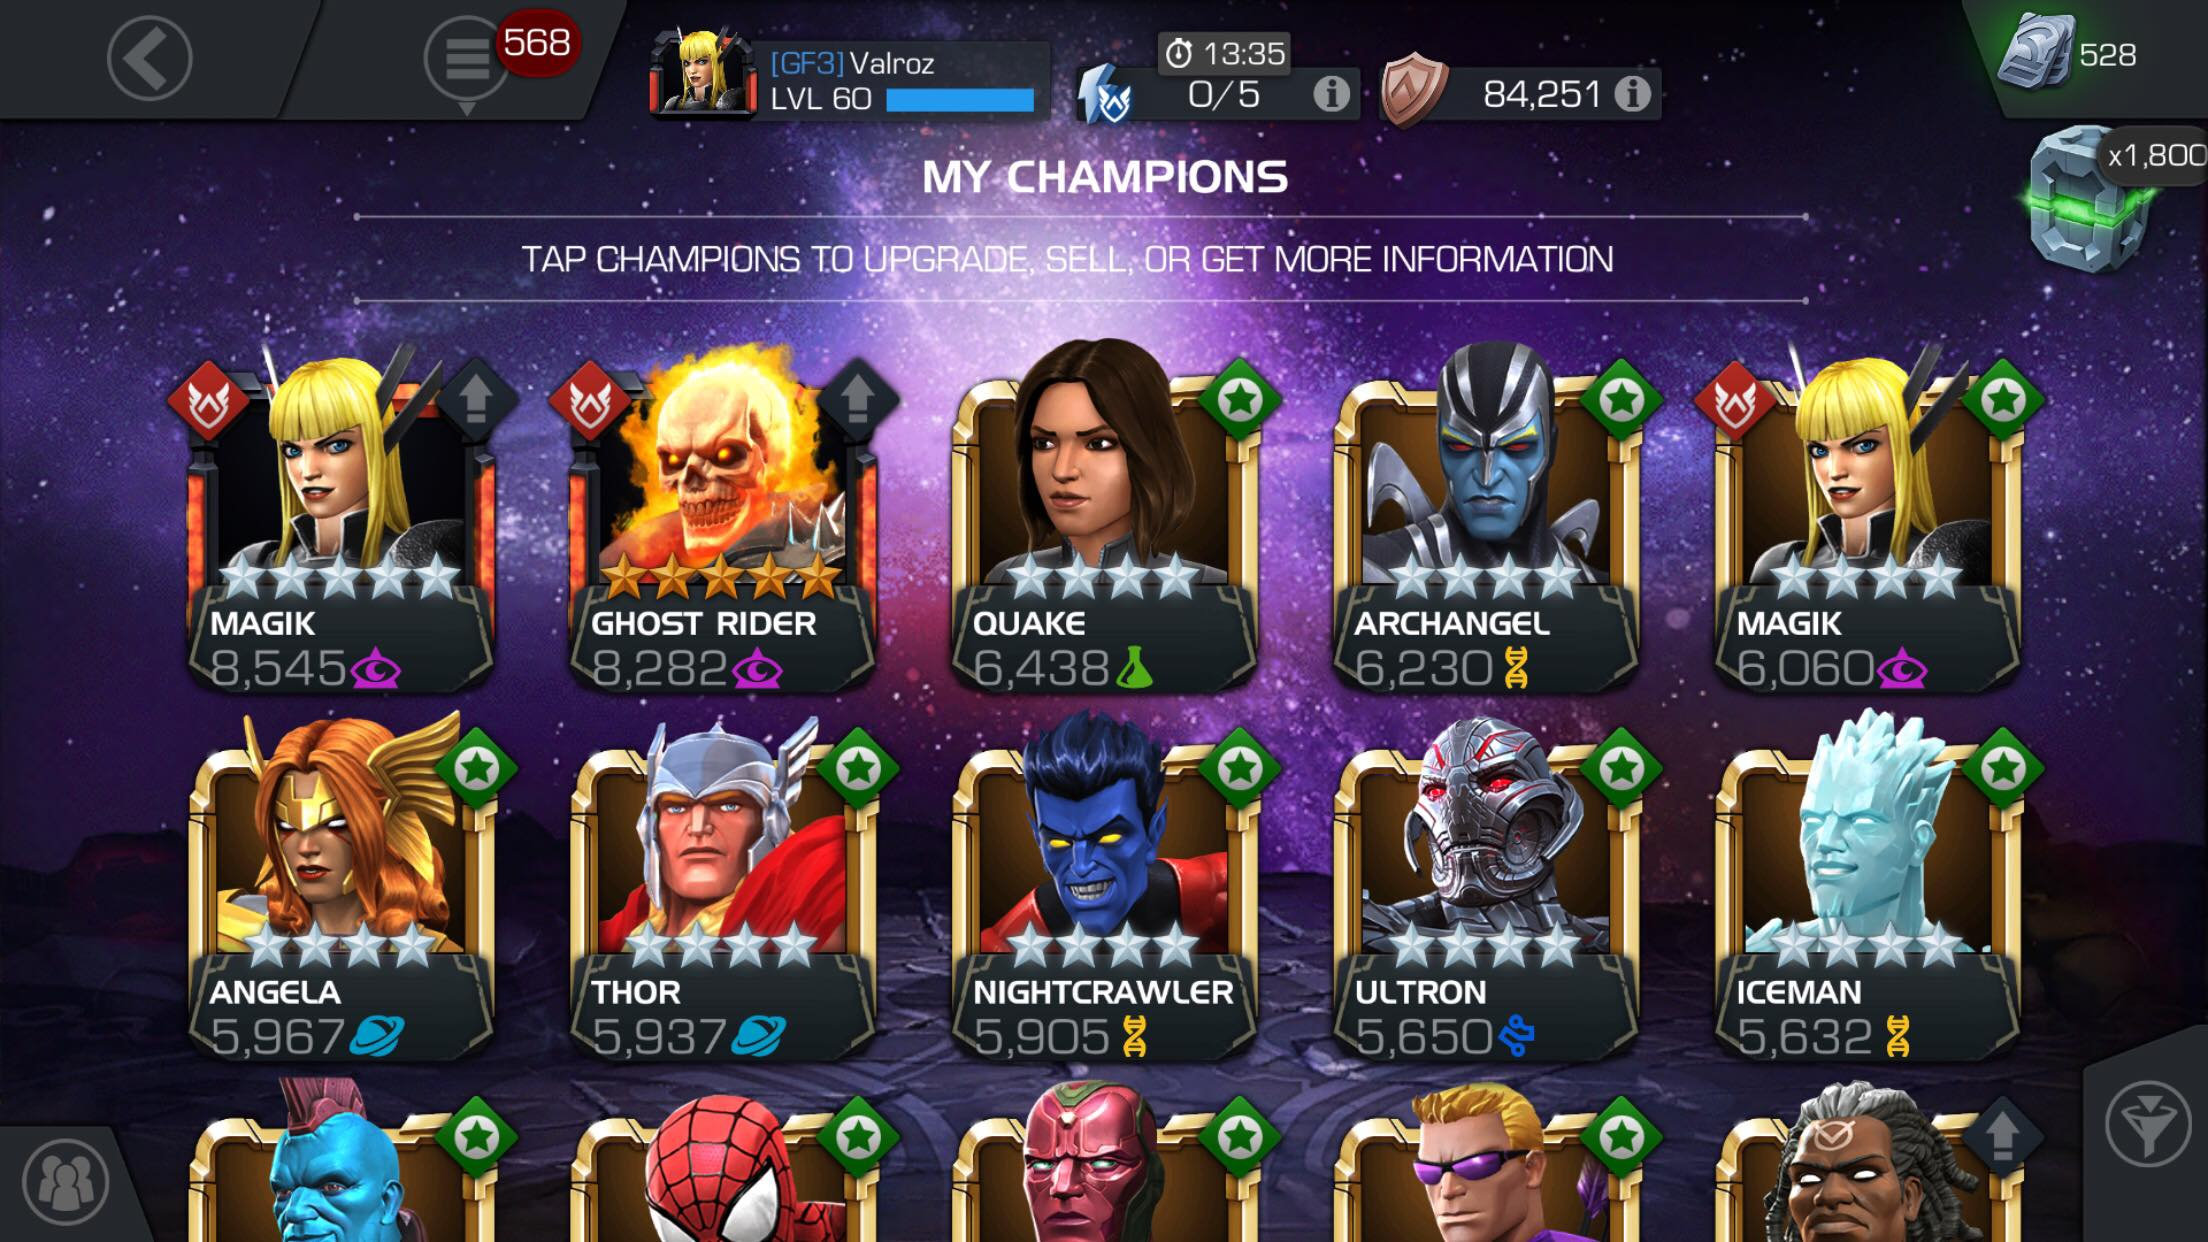 Who do you think should be my top 3 attack champs for AQ and AW